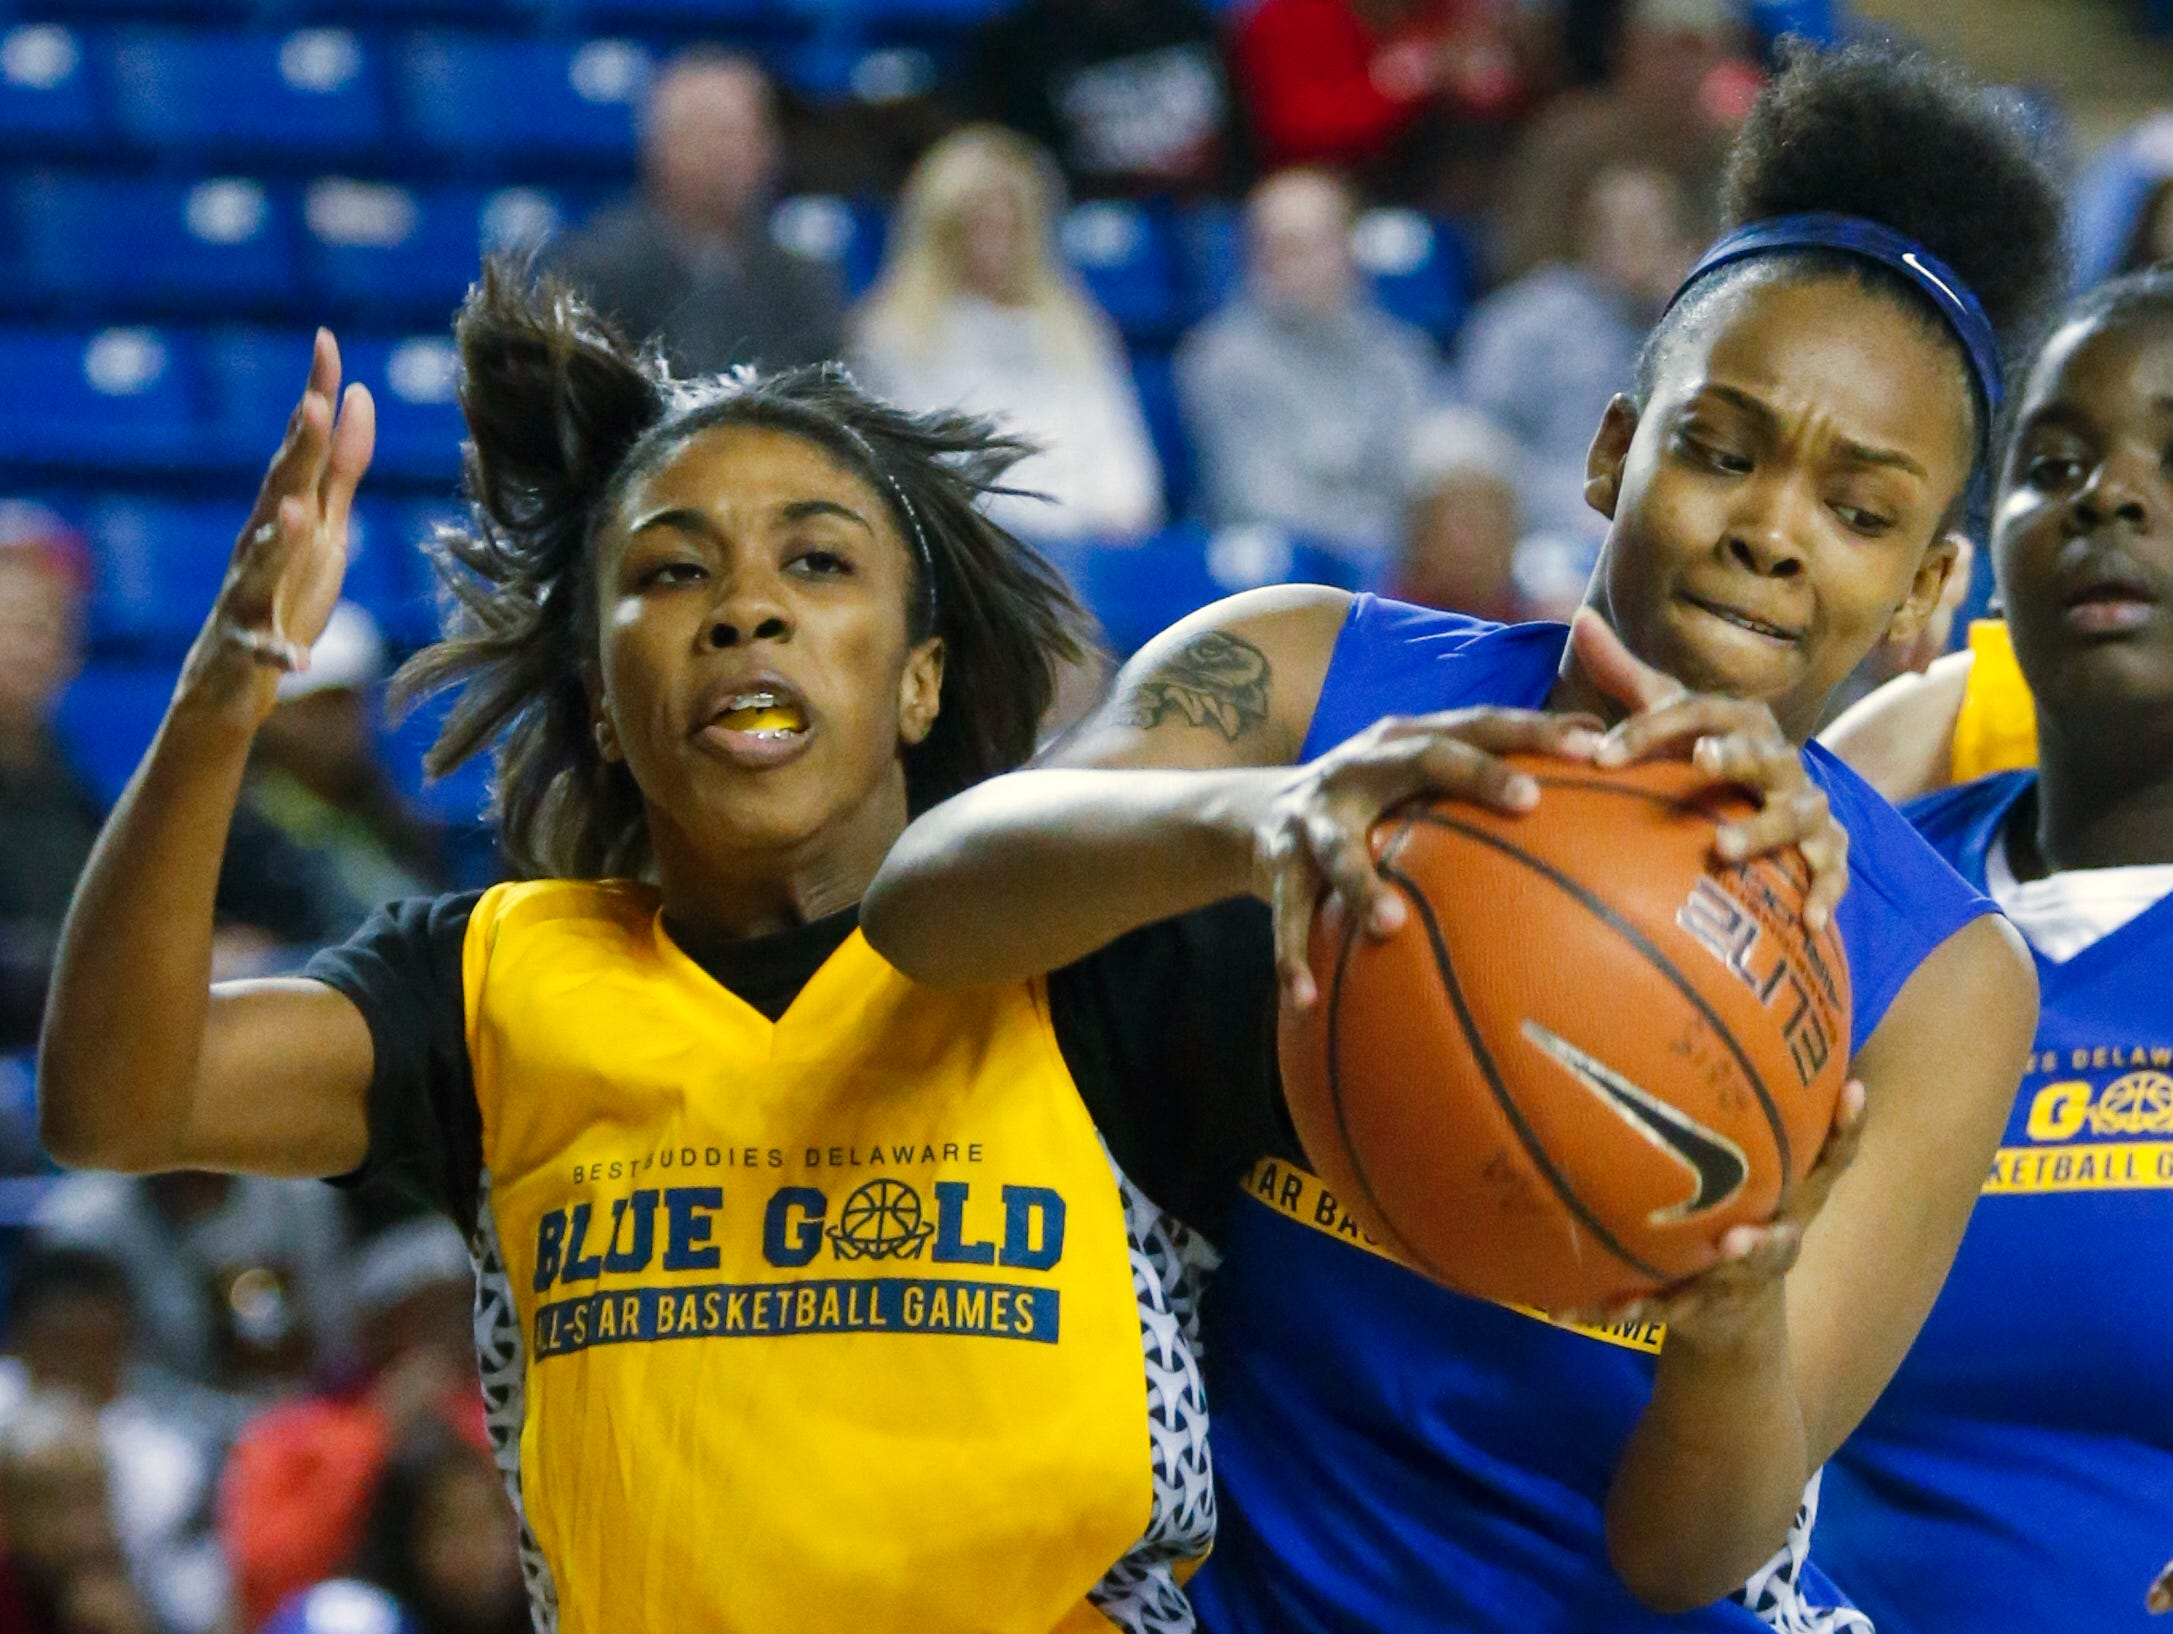 Gold's Rajene Bowe of Milford fights for a rebound with Blue's Al'kirah Wilson of A.I. du Pont in the second half of the Blue-Gold All-Star Basketball game at the Bob Carpenter Center Saturday. Blue won, 66-54.